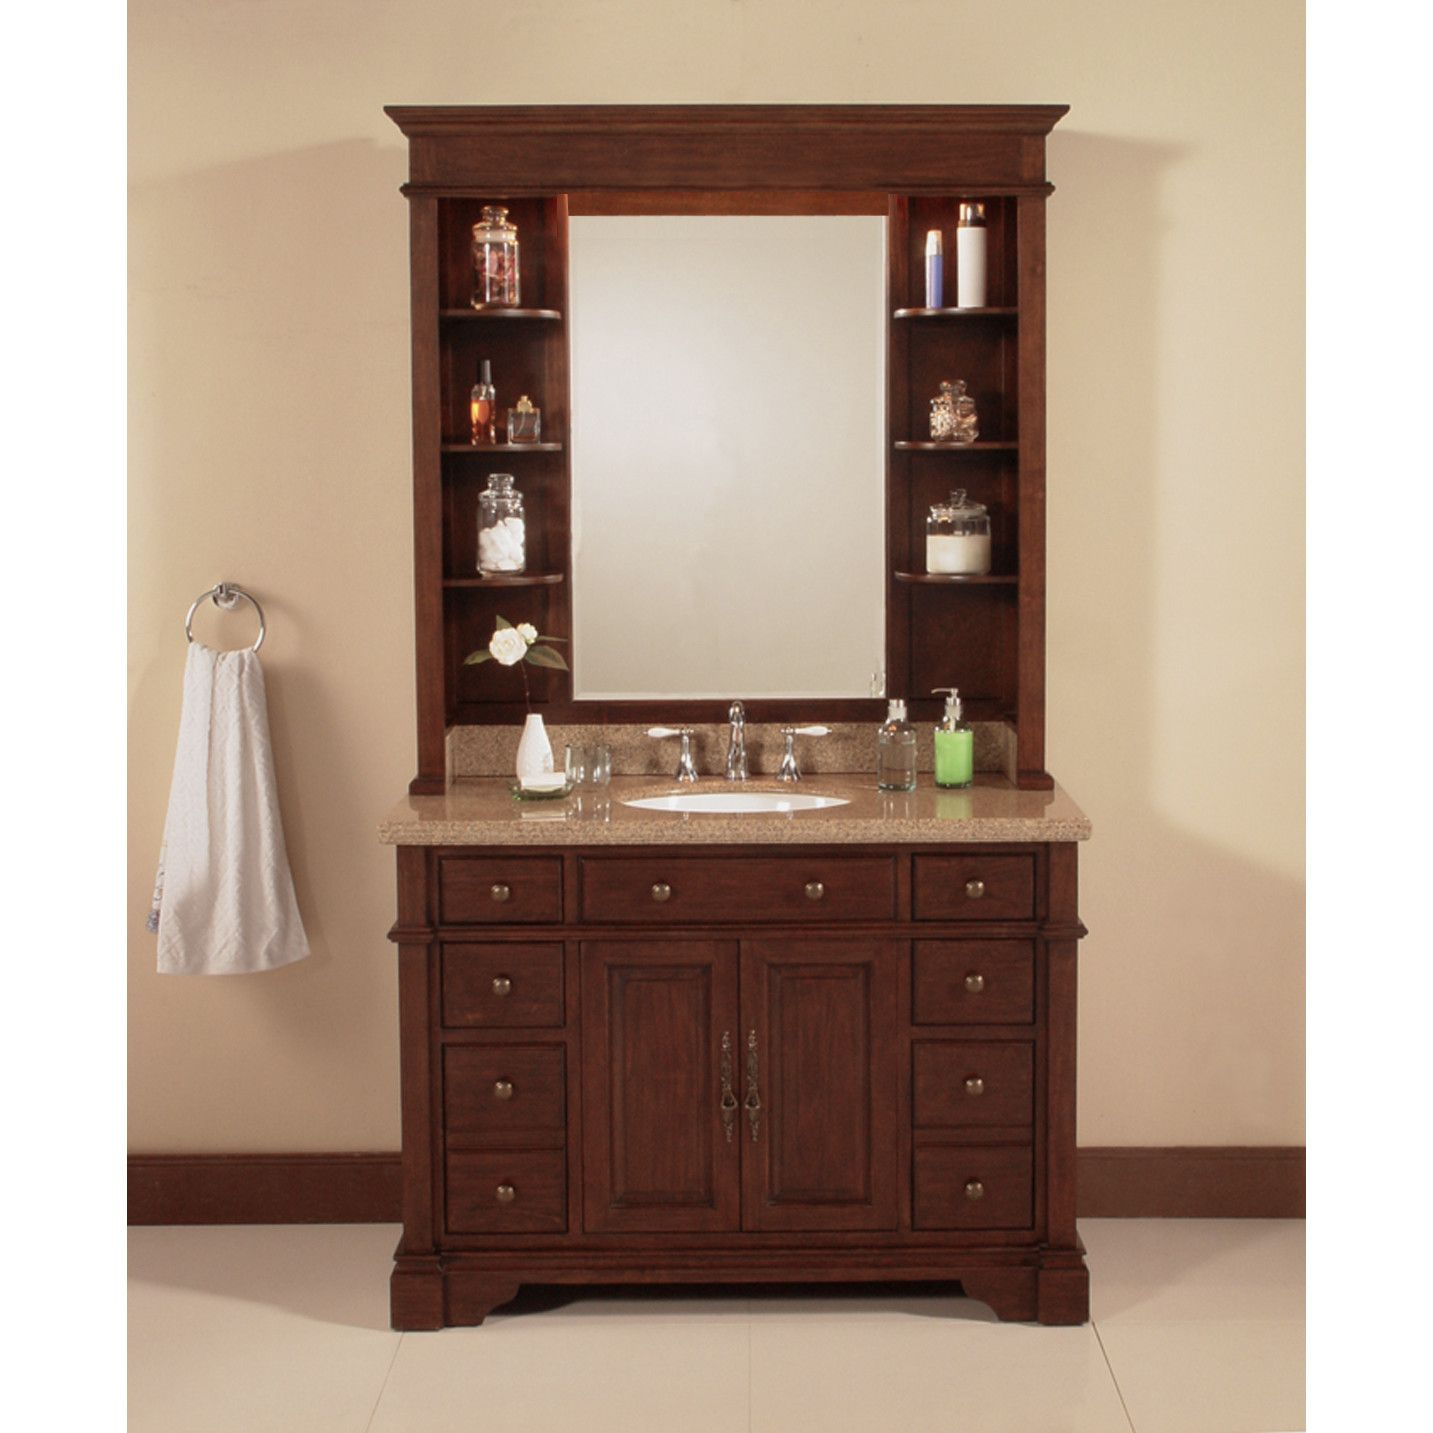 and desk van industrial cheap wall best cabinets inch excellent bathroom diy discount sink mounted lights wayfair ideas set furniture vanities ashley vanity with for creative double